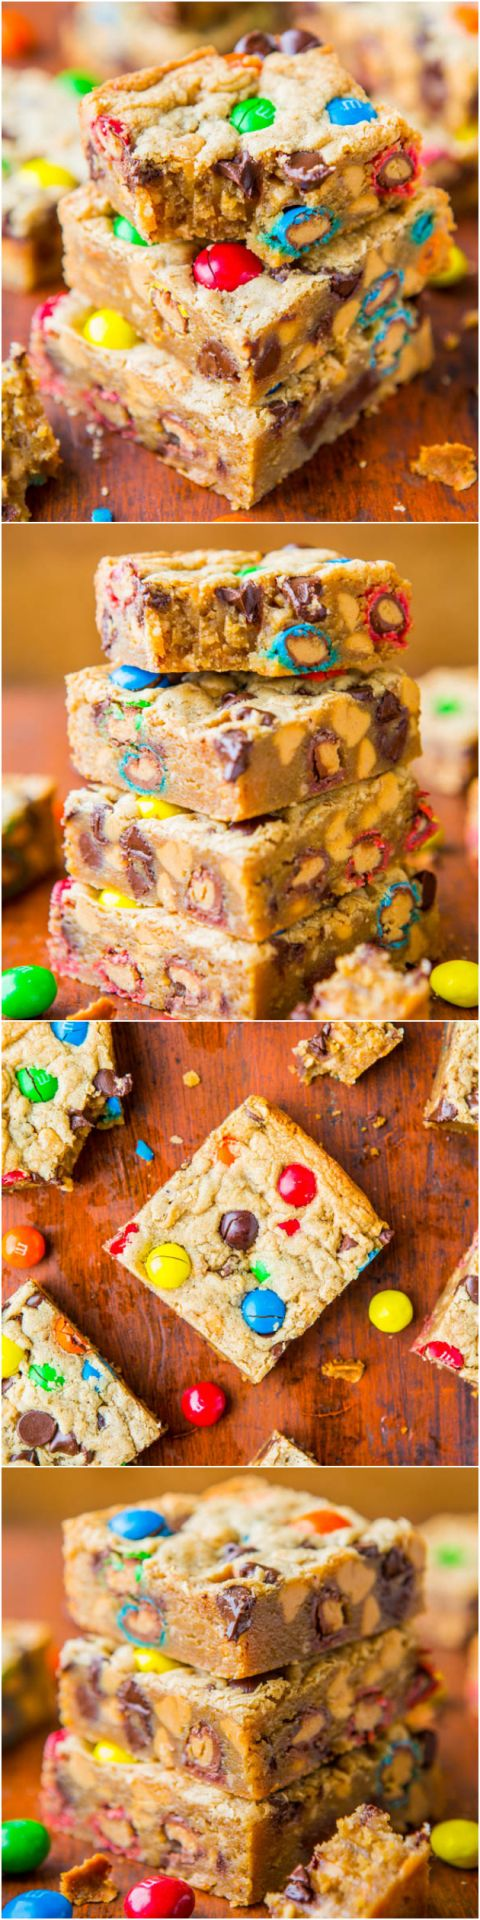 Triple Peanut Butter Monster Cookie Bars - Soft, gooey bars loaded with M&Ms, chocolate and made for serious peanut butter lovers! So good! (Great for using your leftover Halloween candy!)